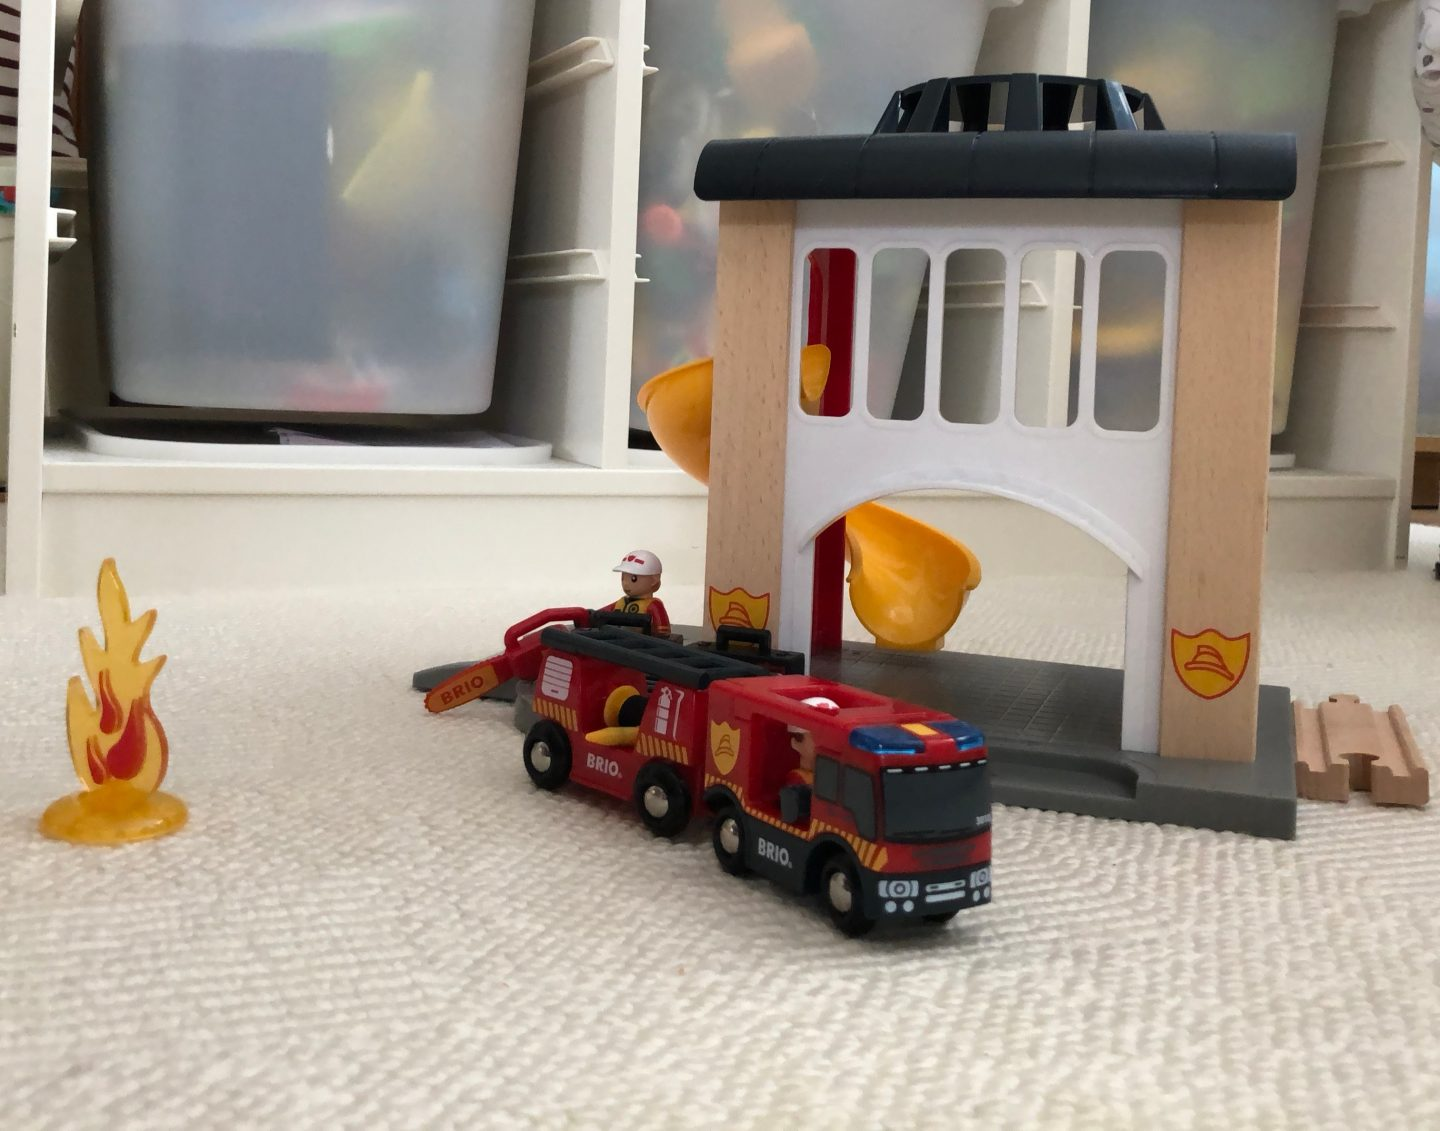 BRIO fire station toy